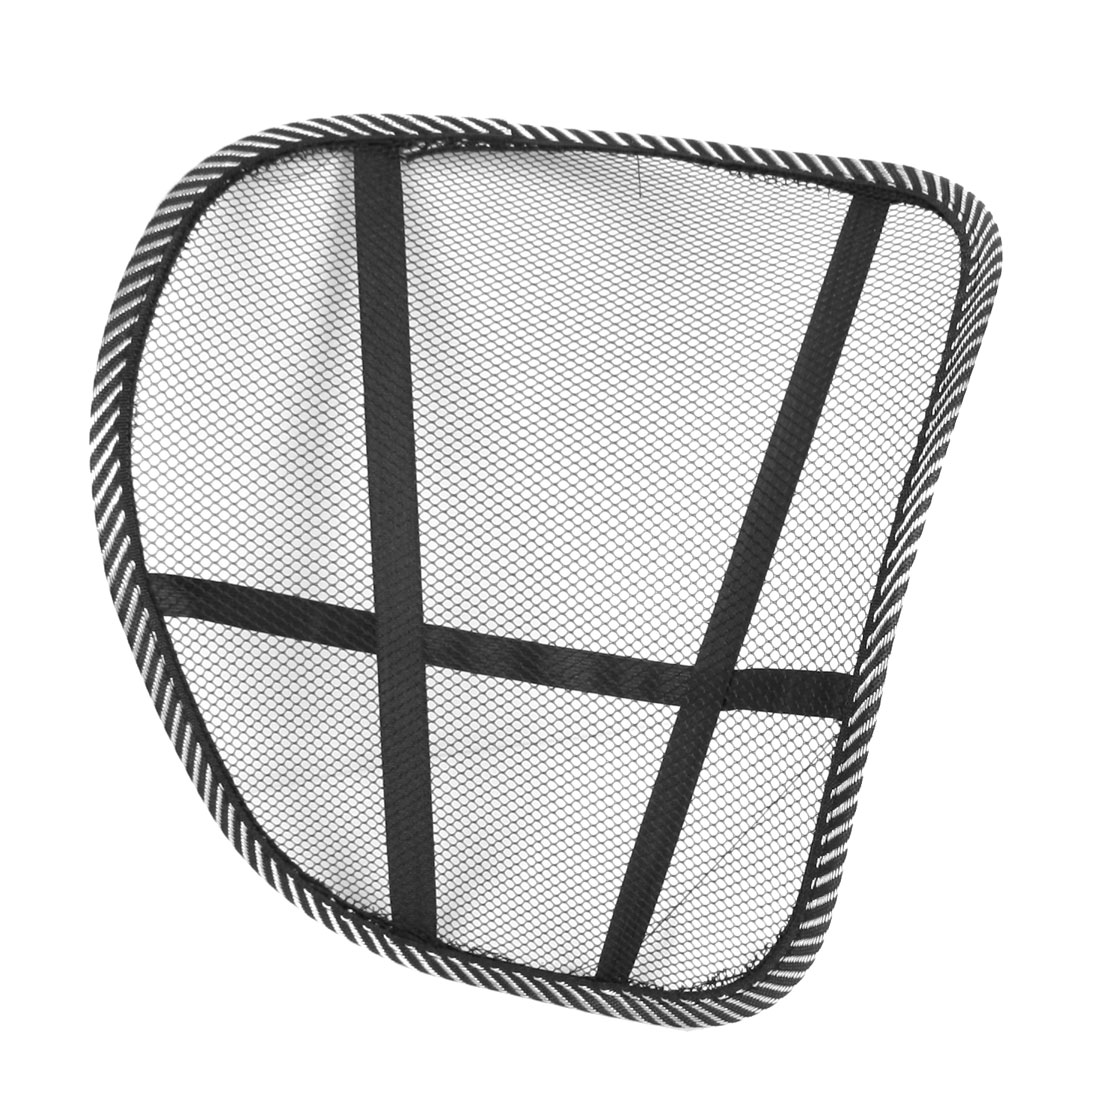 Home Chair Truck Car Seat Cooling Air Flow Mesh Back Rest Support